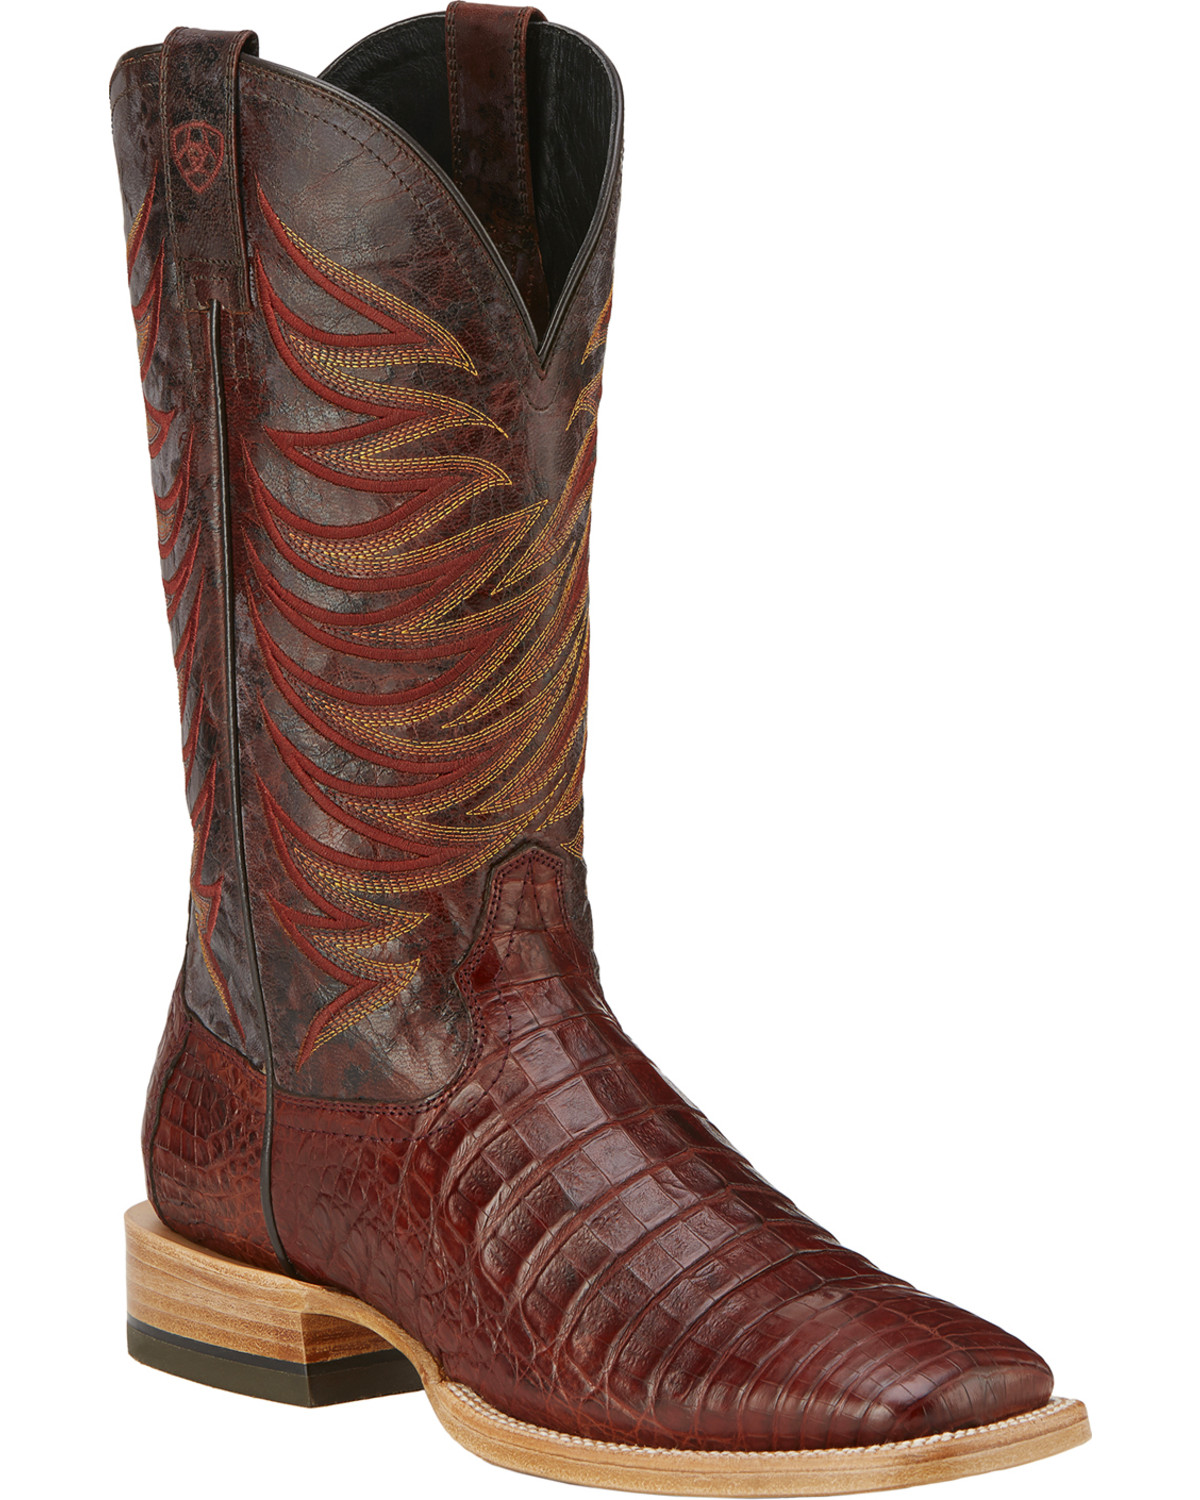 Ariat Fire Catcher Caiman Cowboy Boots - Square Toe | Sheplers